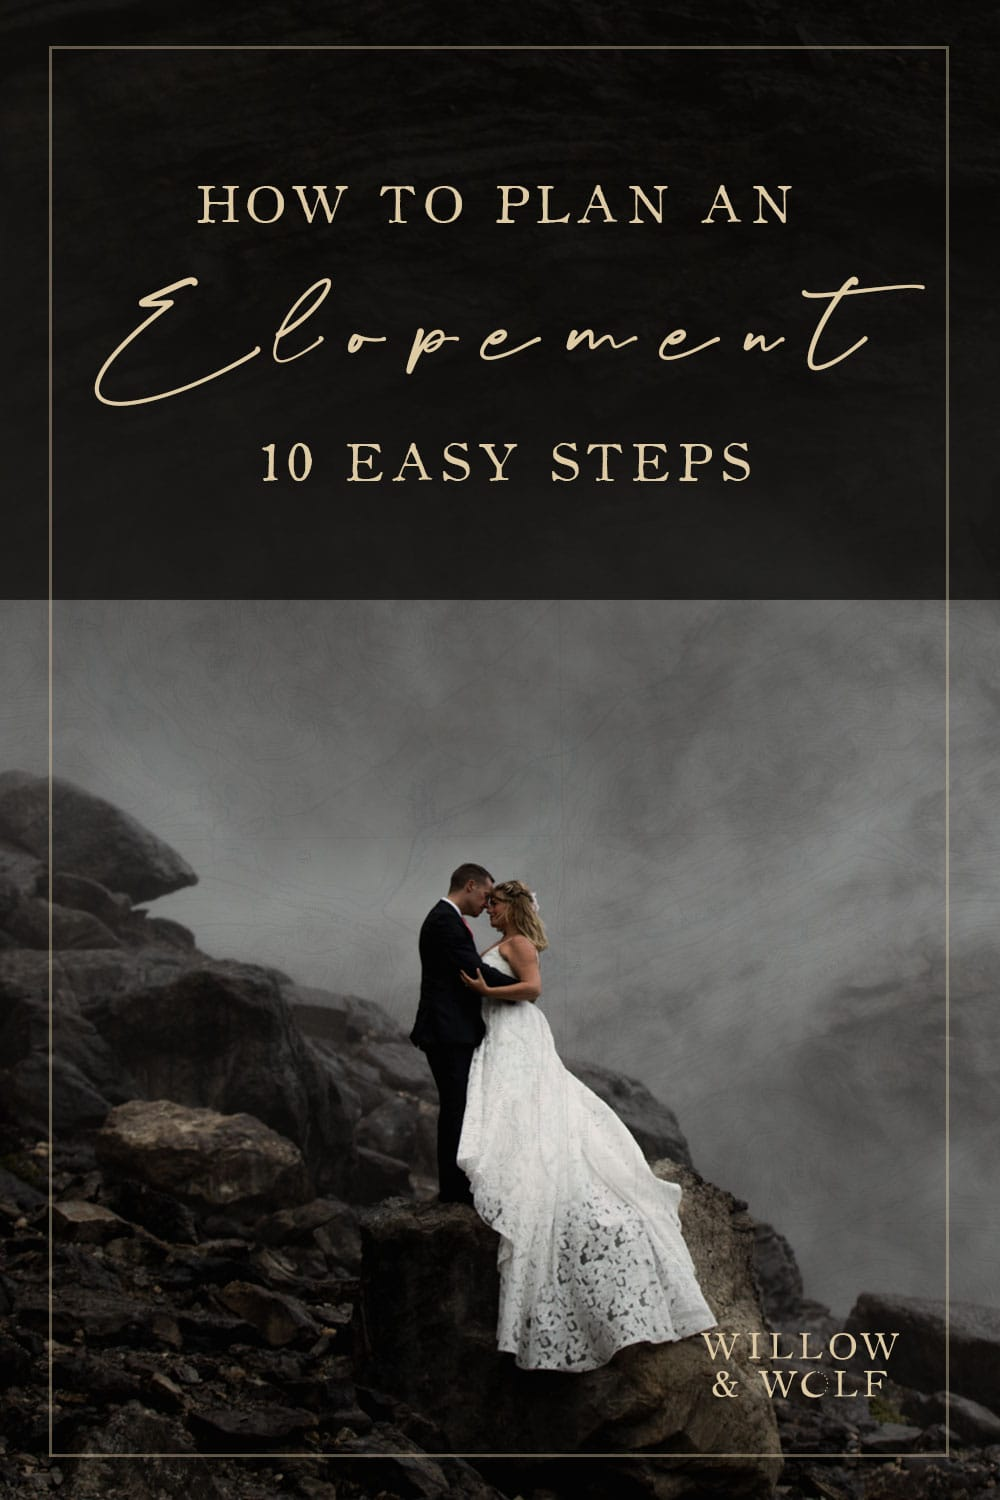 how to plan an elopement in 10 easy steps